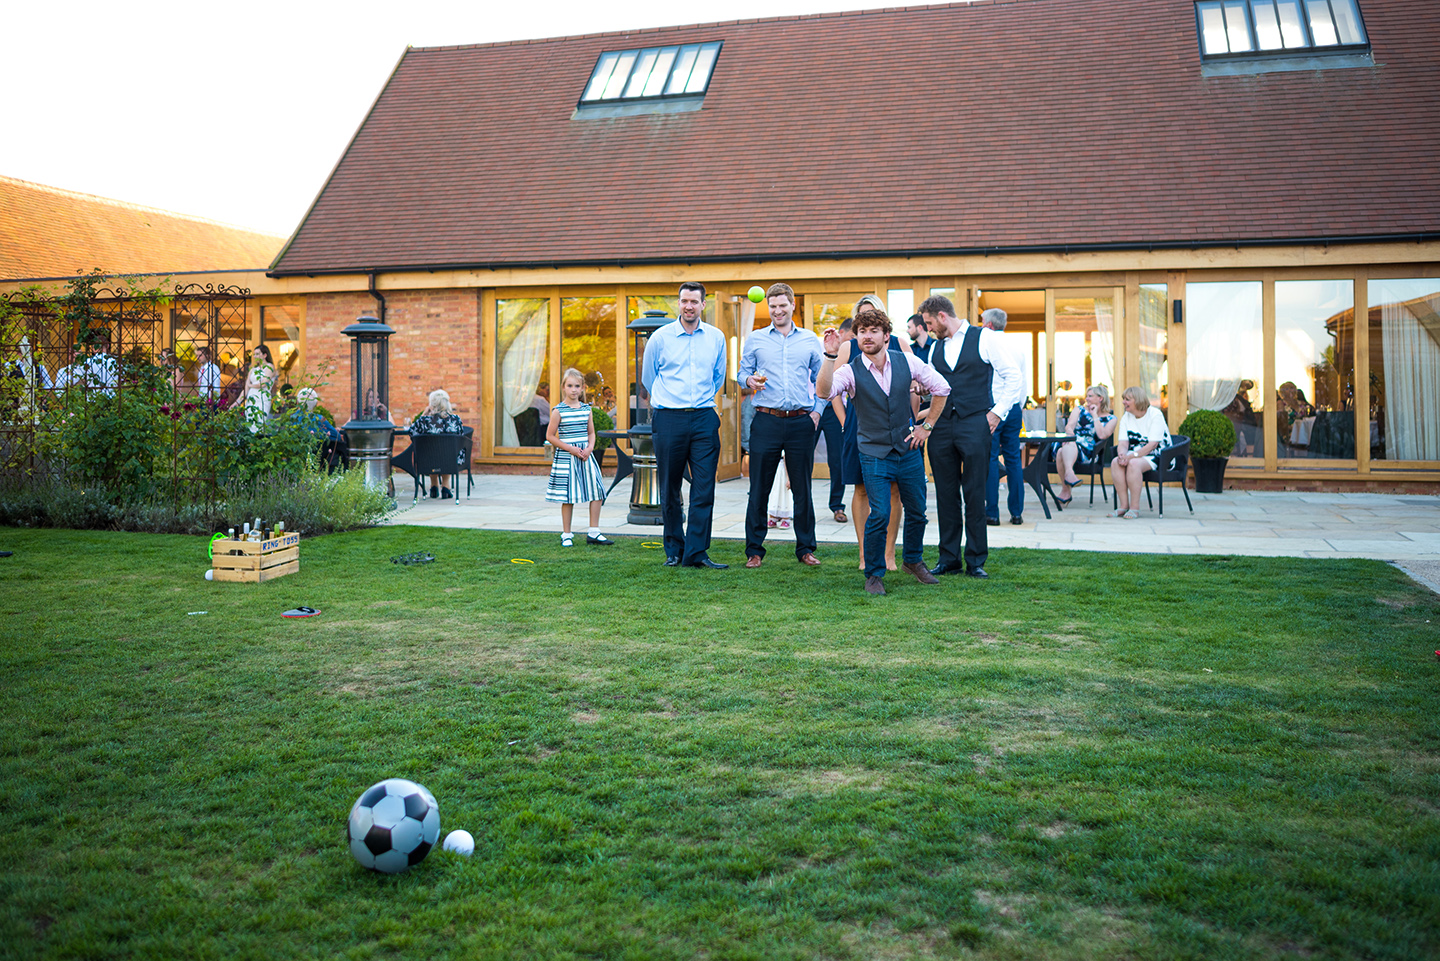 Guests were entertained with outdoor garden games in the pretty gardens